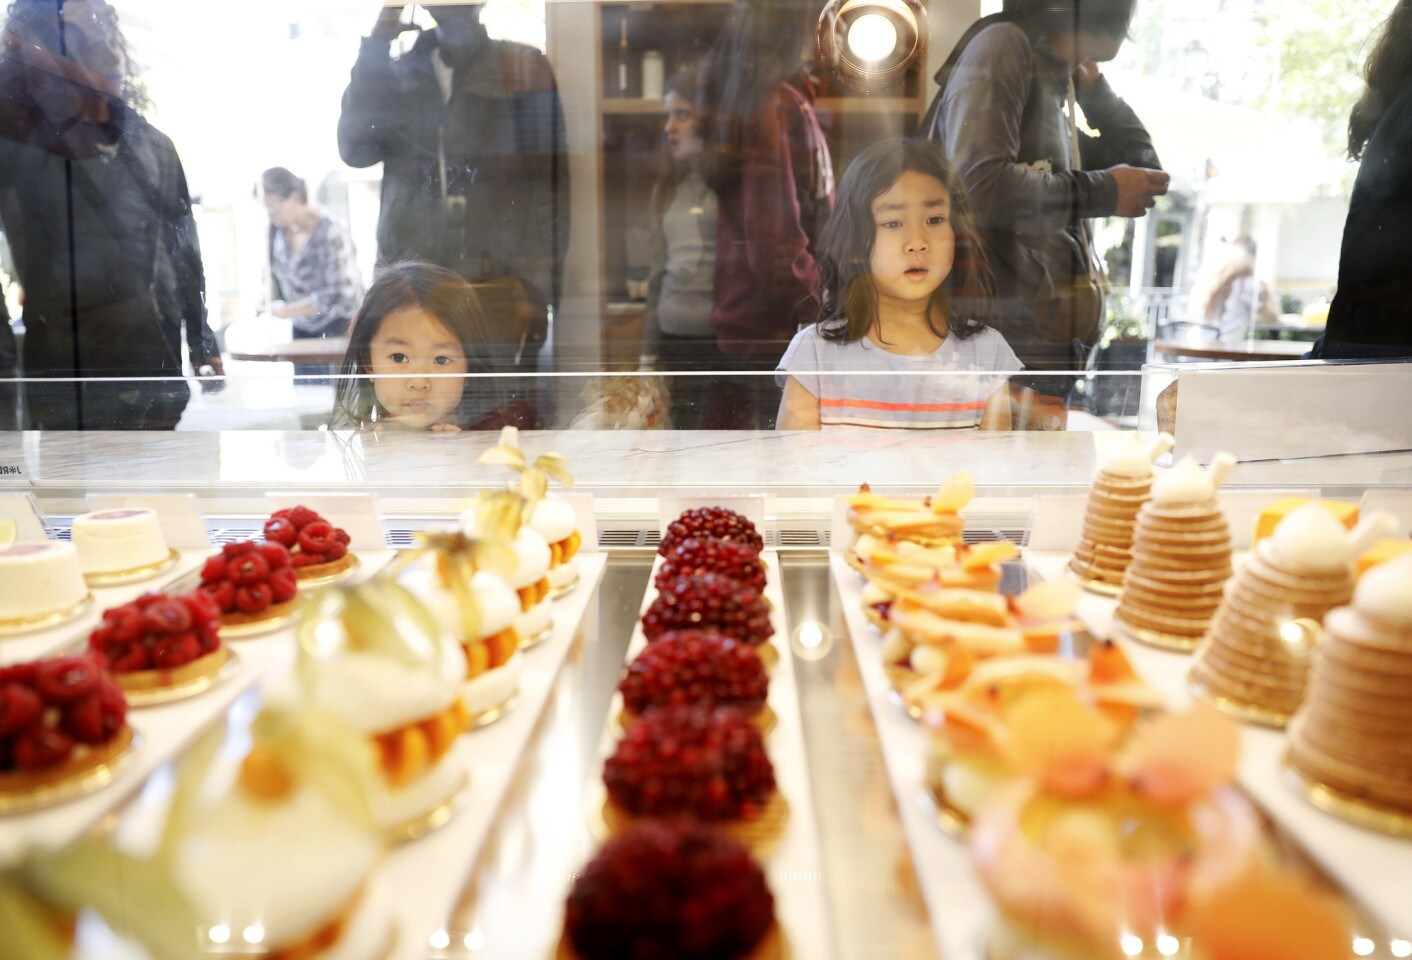 Three-year-old Lydia Sebata, left, and her sister Candice, 5, right, peer into the glass case at Dominique Ansel Bakery at the Grove in Los Angeles.